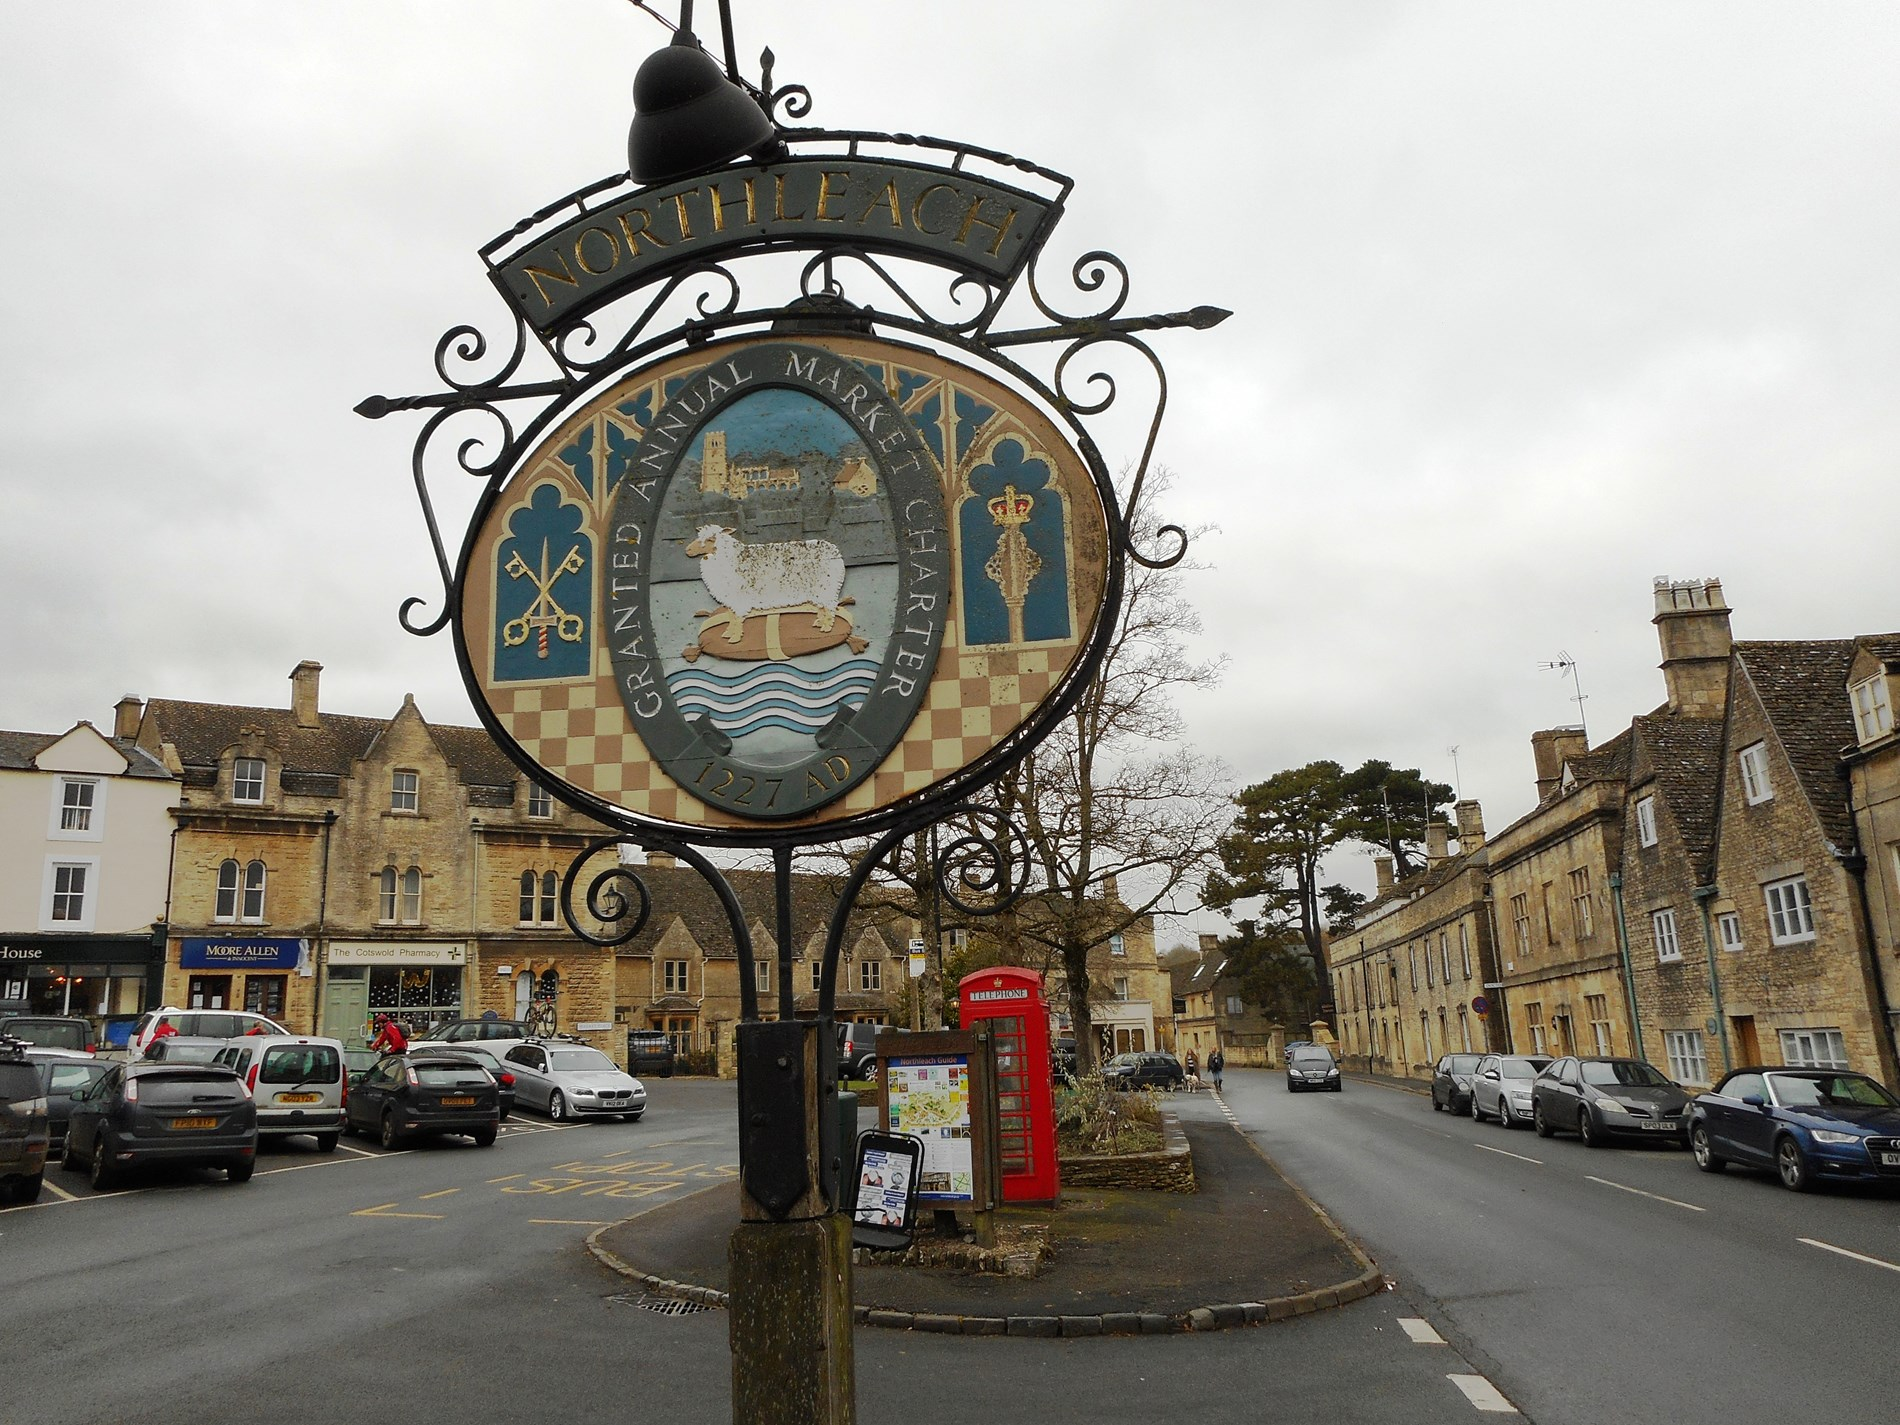 Northleach market town